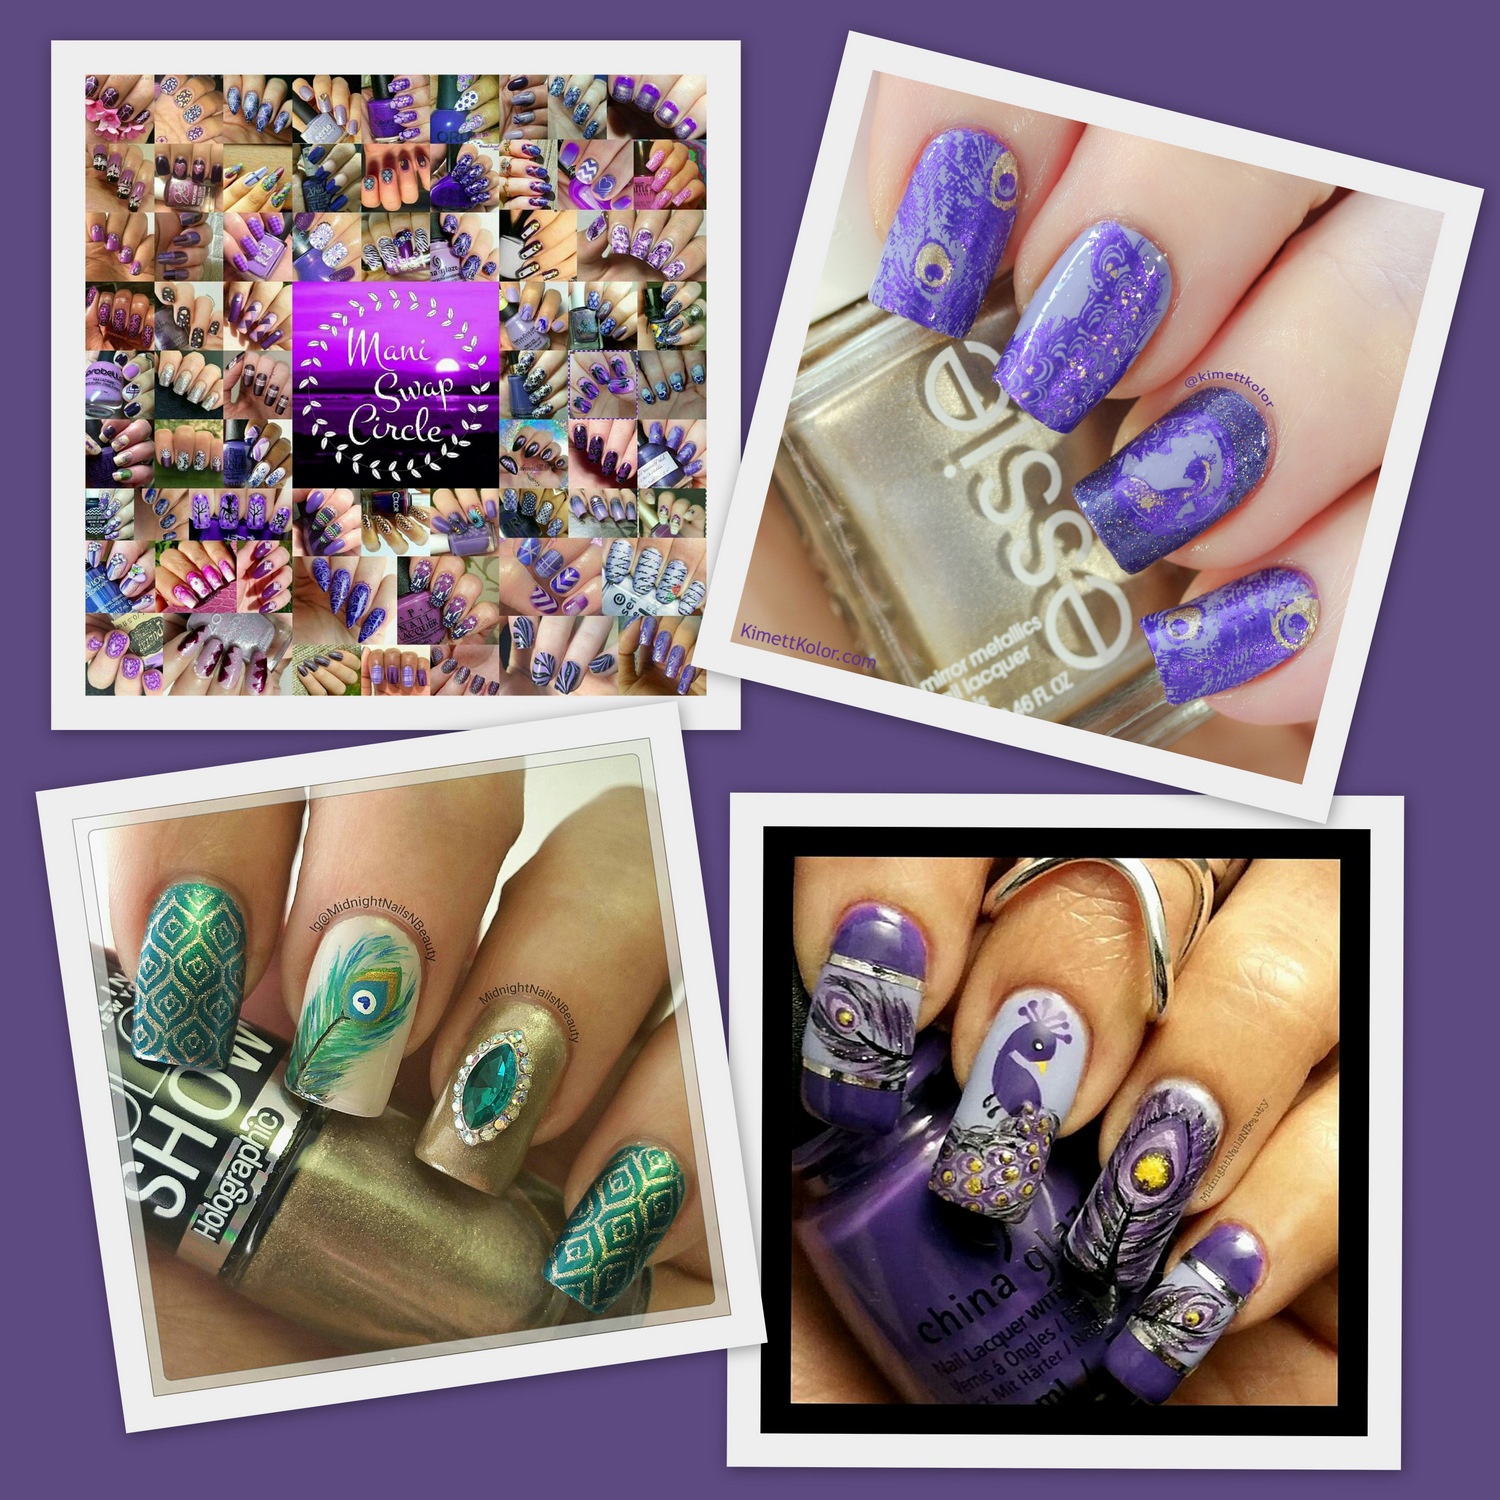 KimettKolor ManiSwapCircle Purple Peacock Nail Art